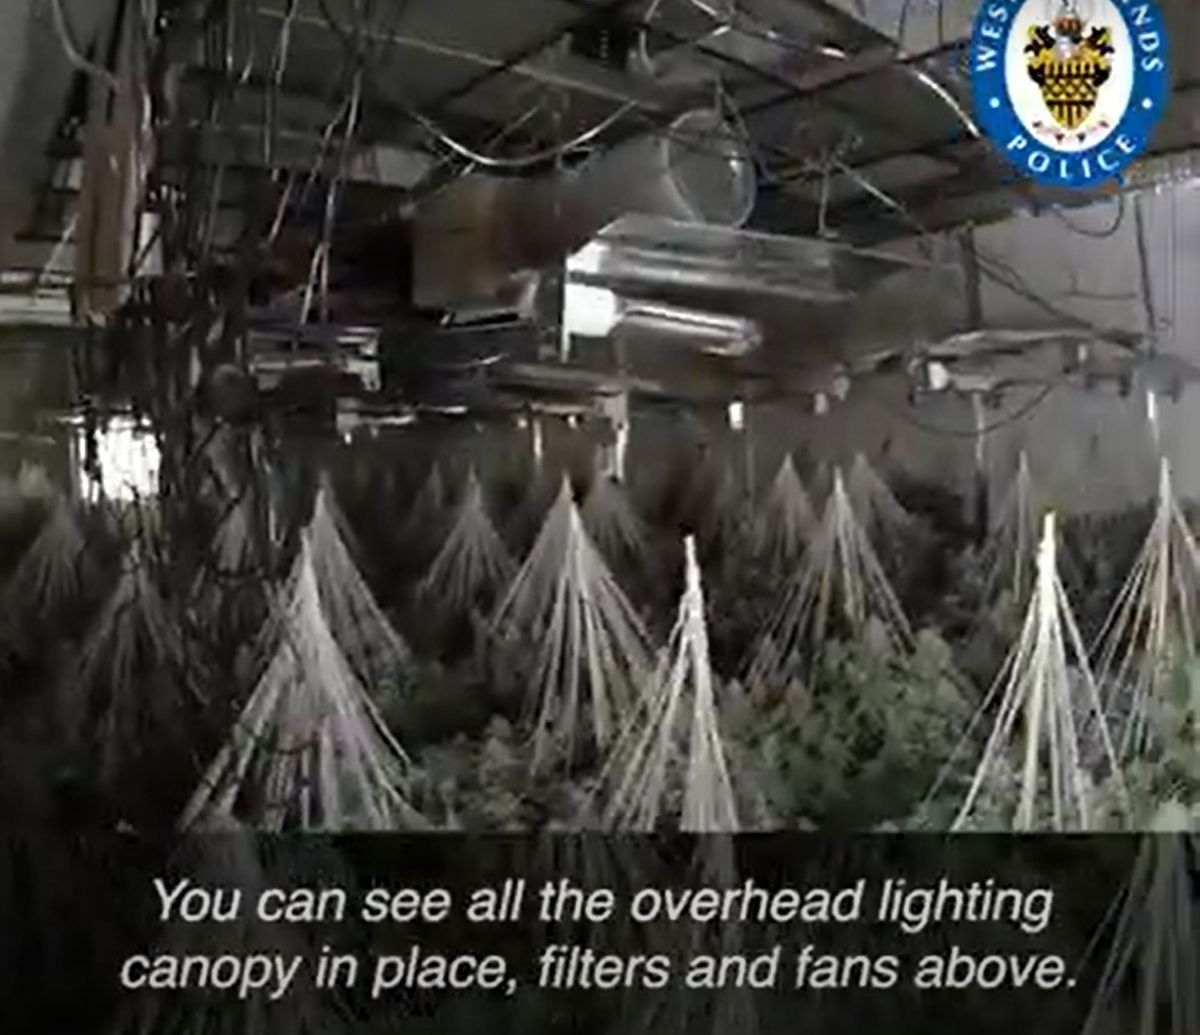 Some of the cannabis plants